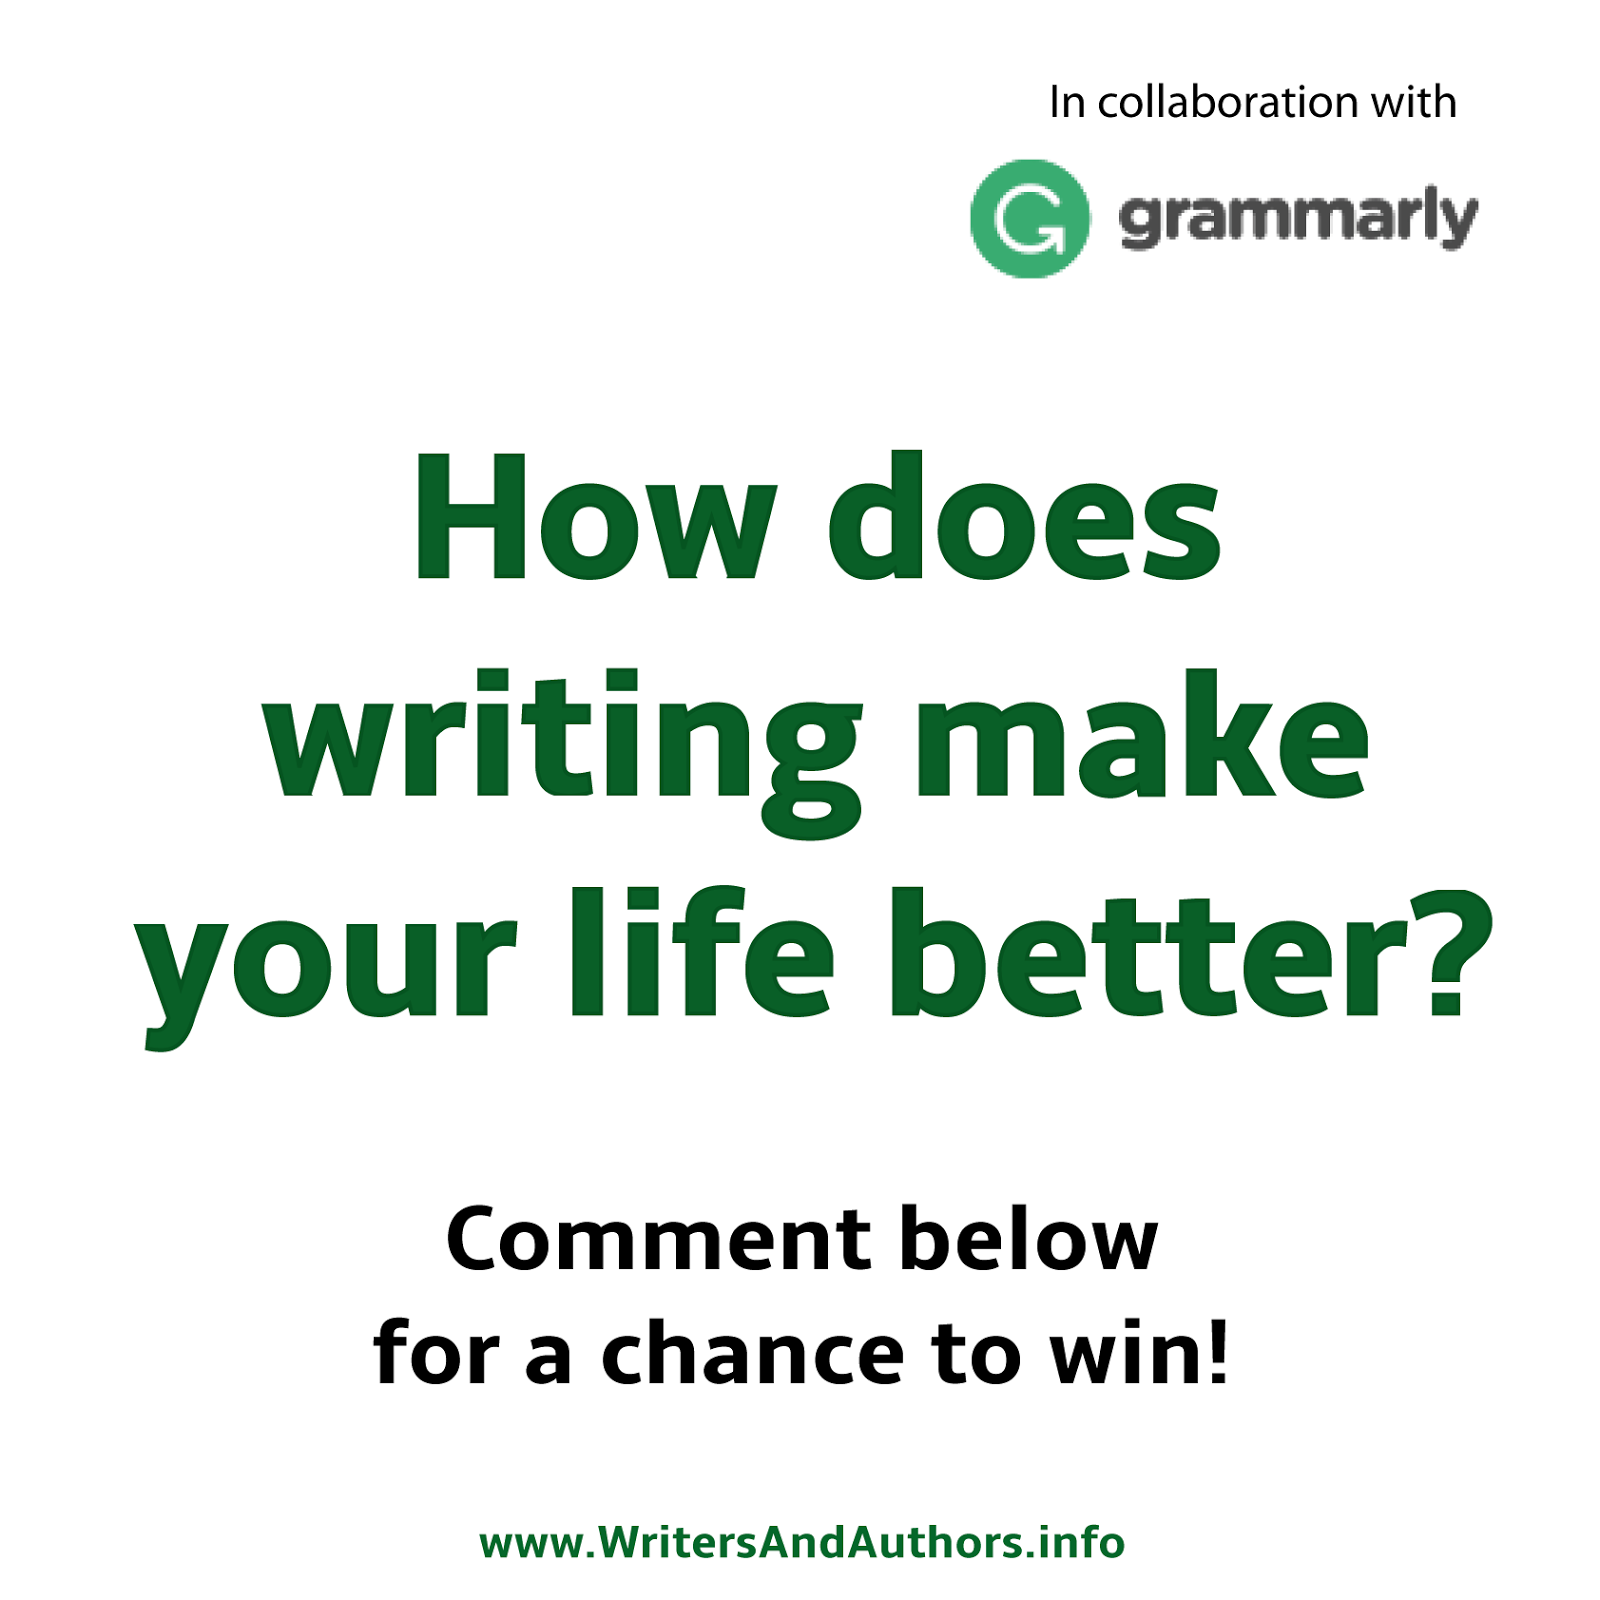 How does writing make your life better? #Contest #Grammarly www.WritersAndAuthors.info